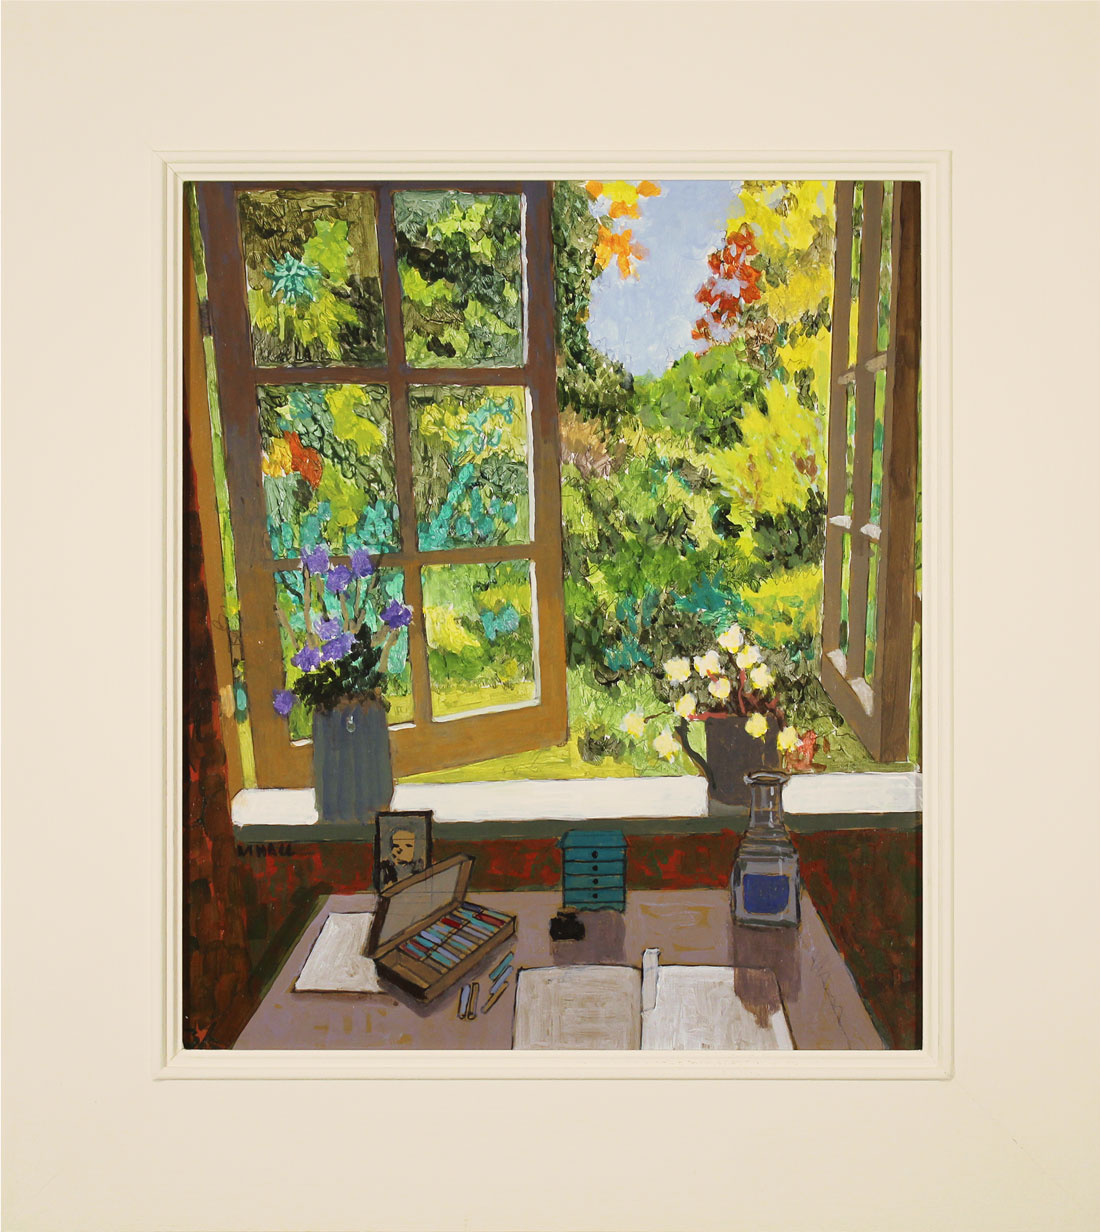 Mike Hall, Original acrylic painting on board, View of Summer Garden, click to enlarge